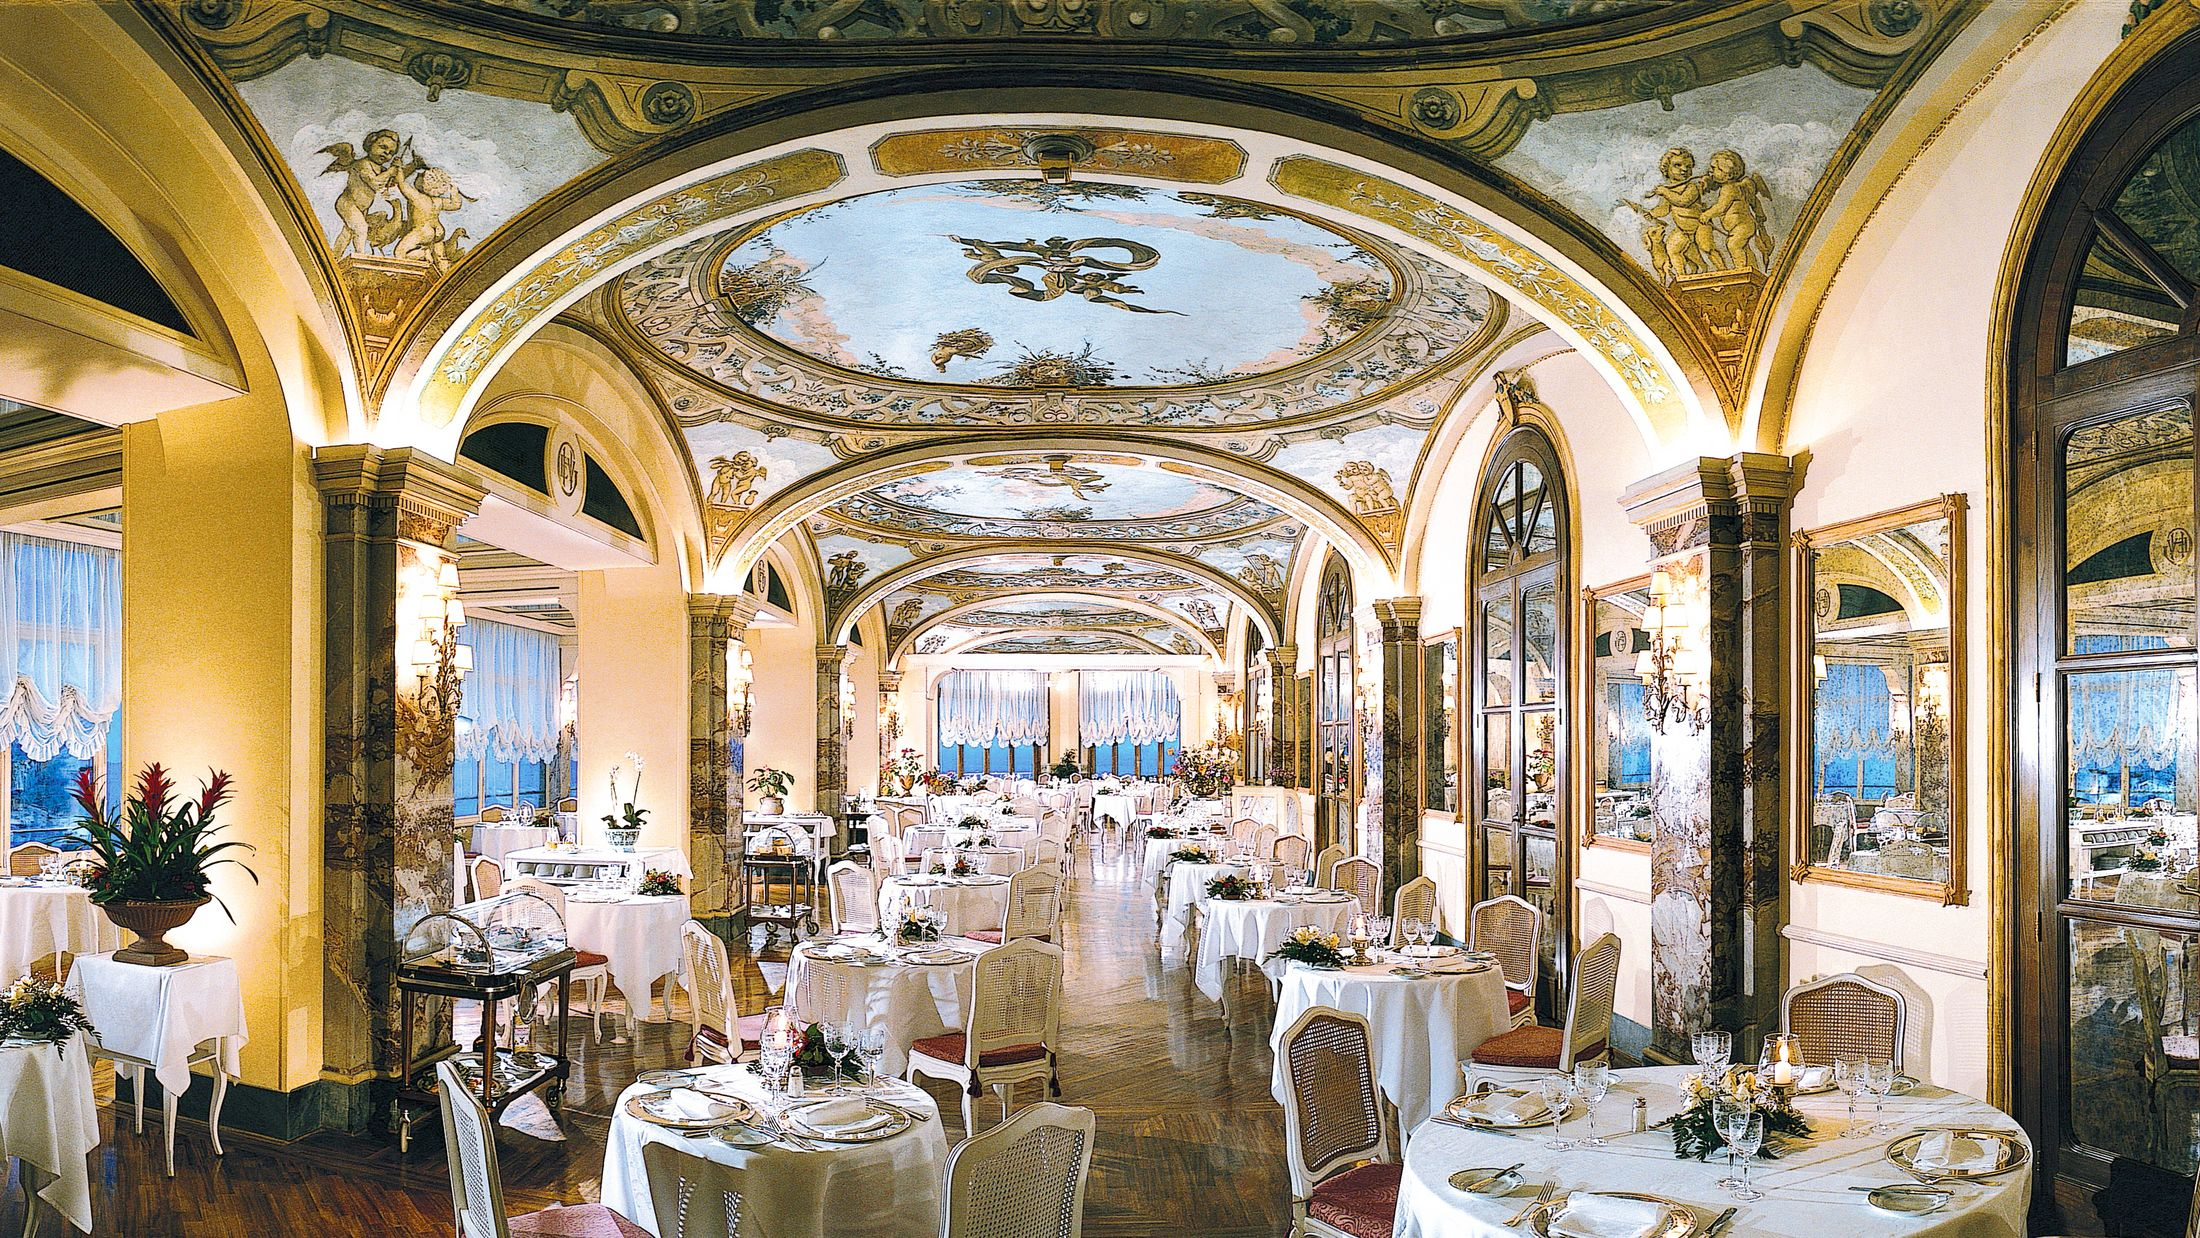 Grand Hotel Excelsior Vittoria Sorrento Italy Sovereign